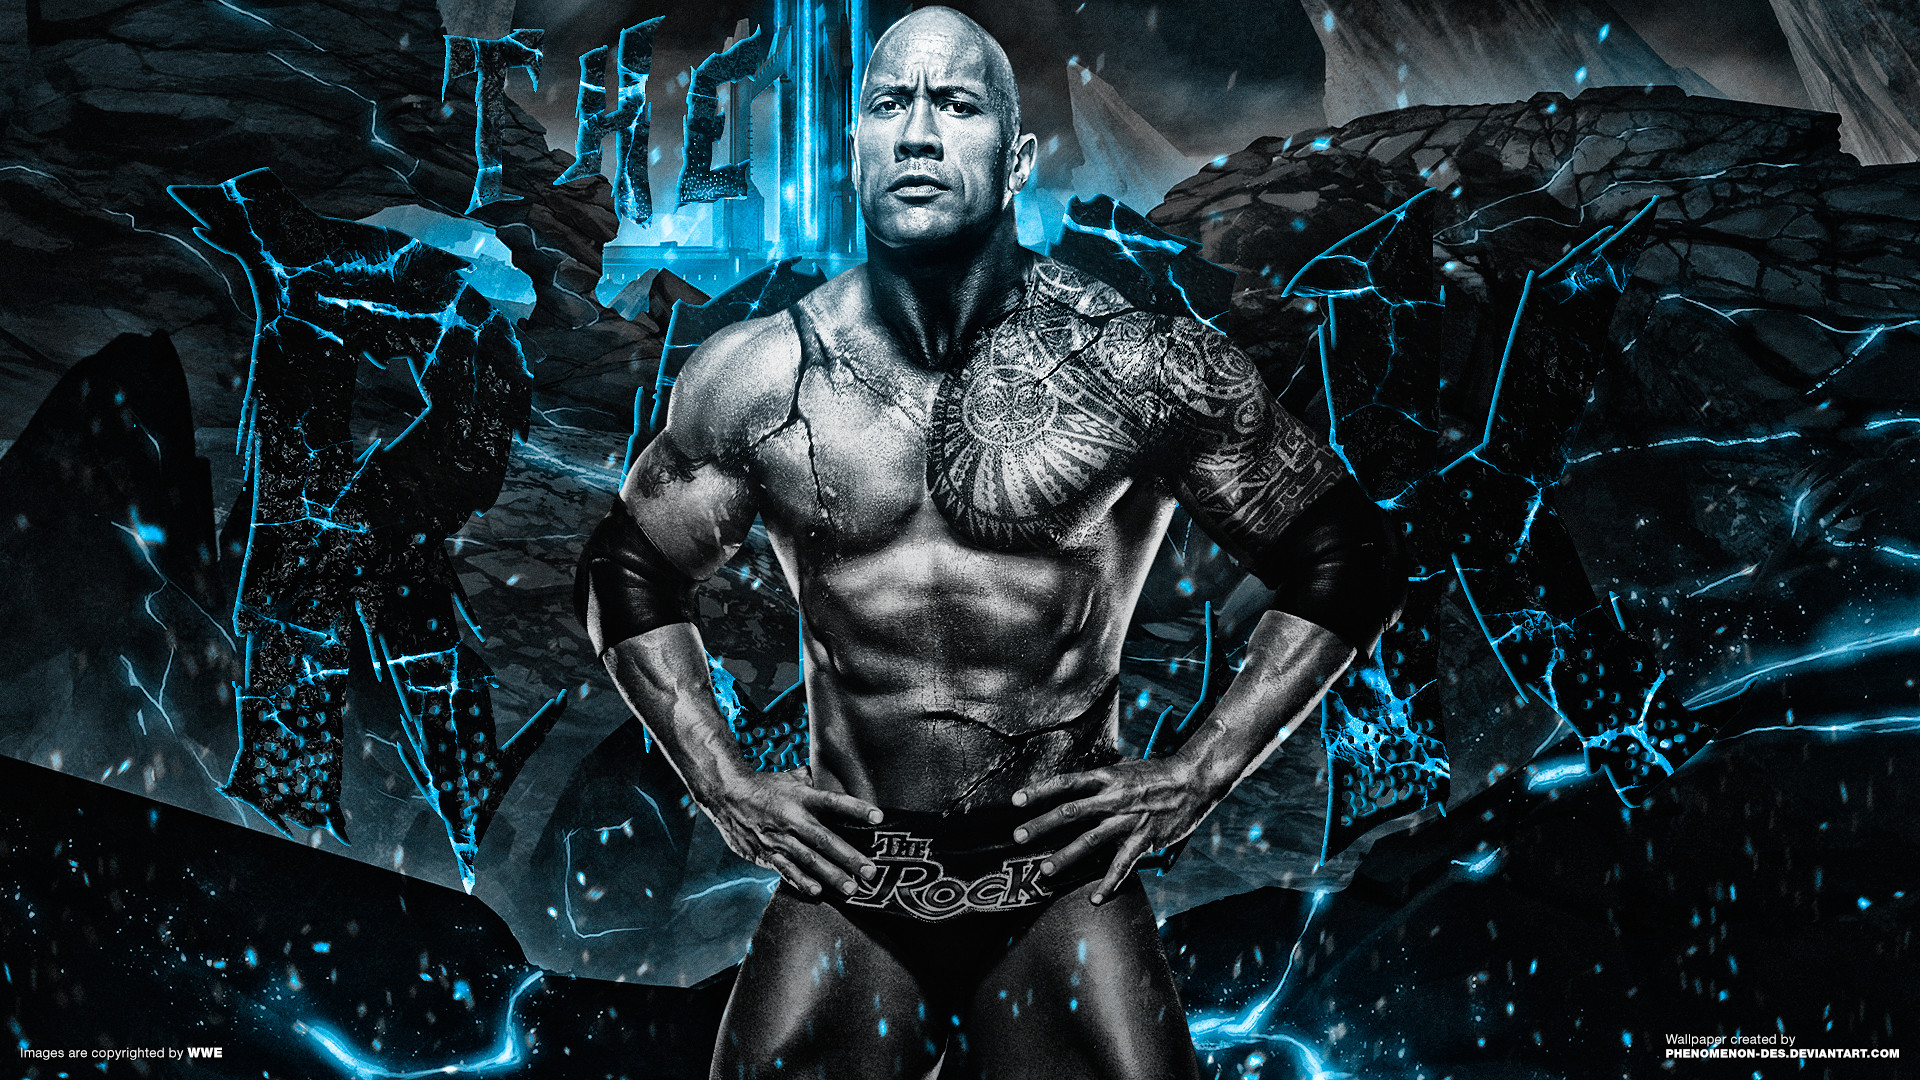 Wwe immortals wallpapers 78 images - Wwe wallpaper ...